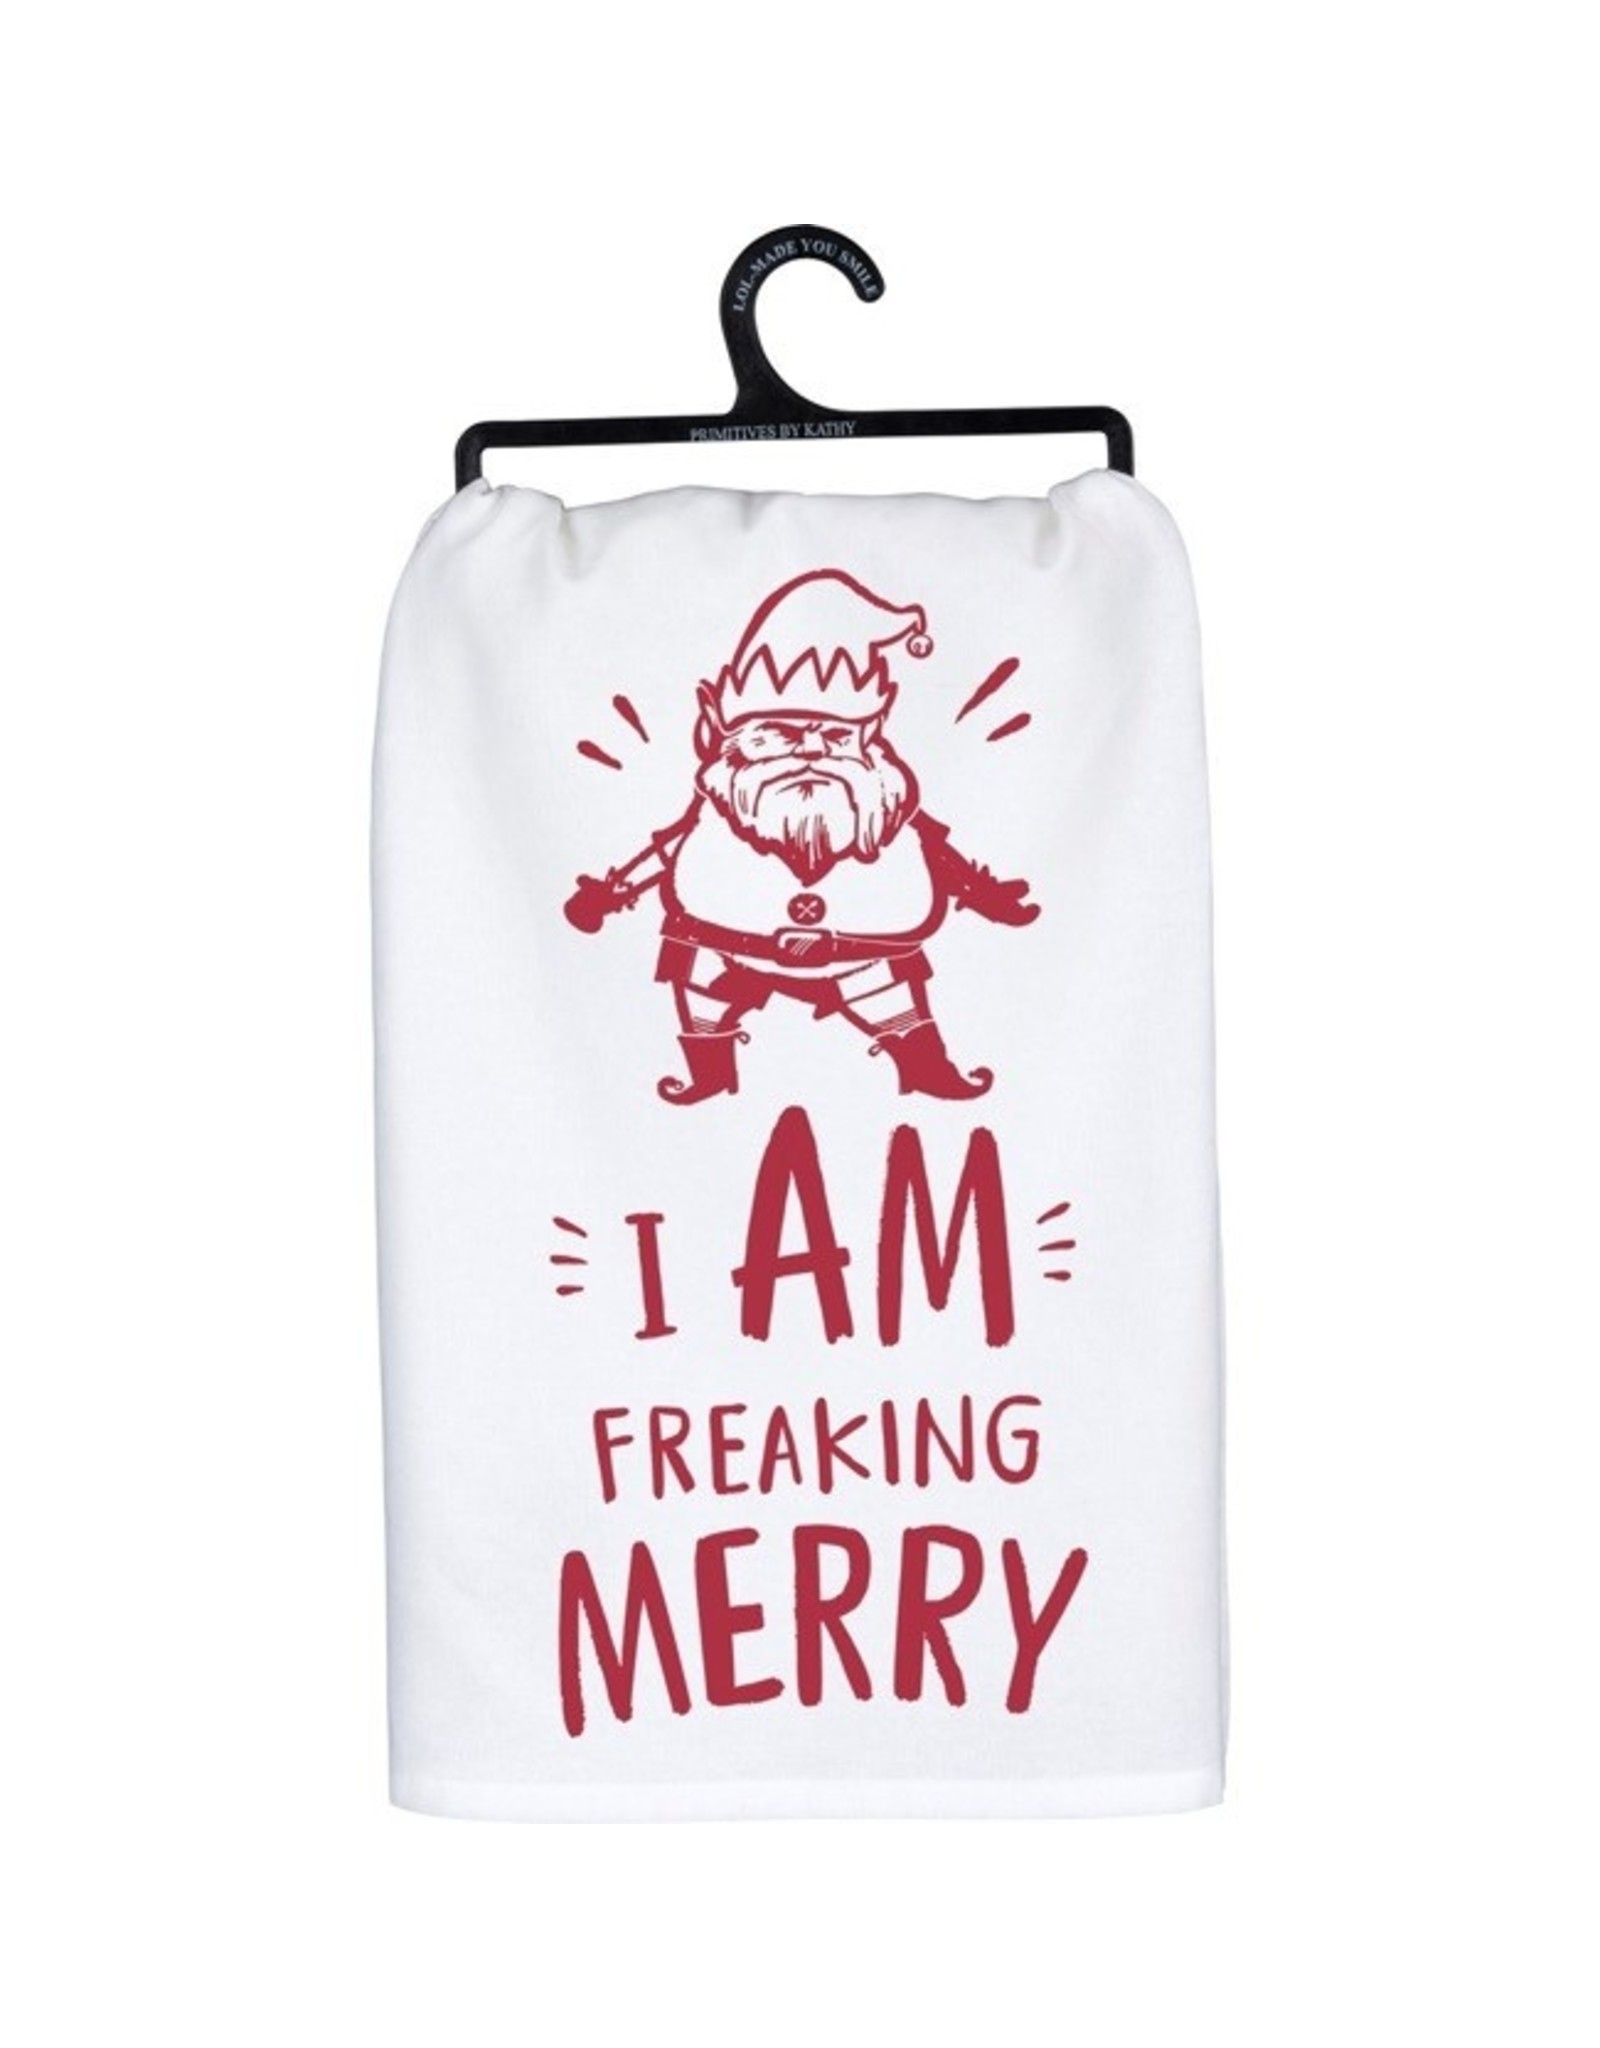 Dish Towel - I Am Freaking Merry